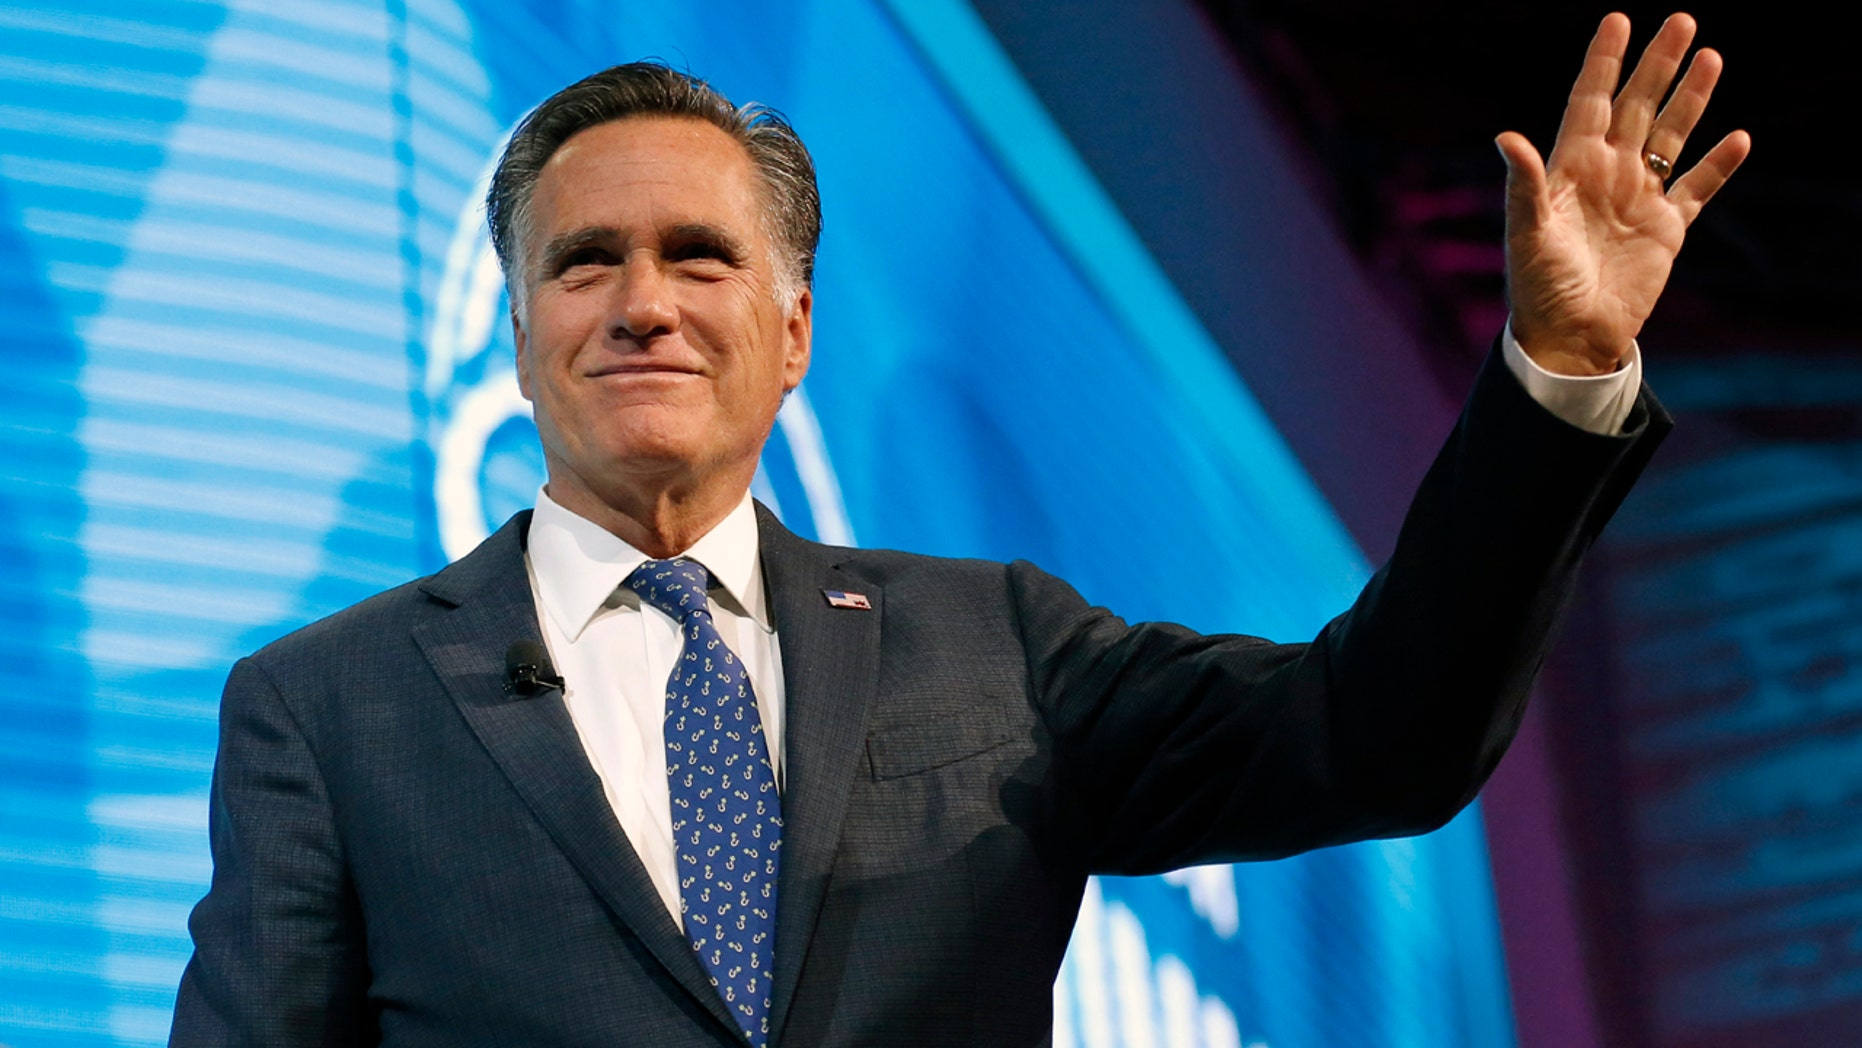 Mitt Romney, at a debate Tuesday night, didn't directly answer when asked if he stood by his previous criticisms of President Trump.